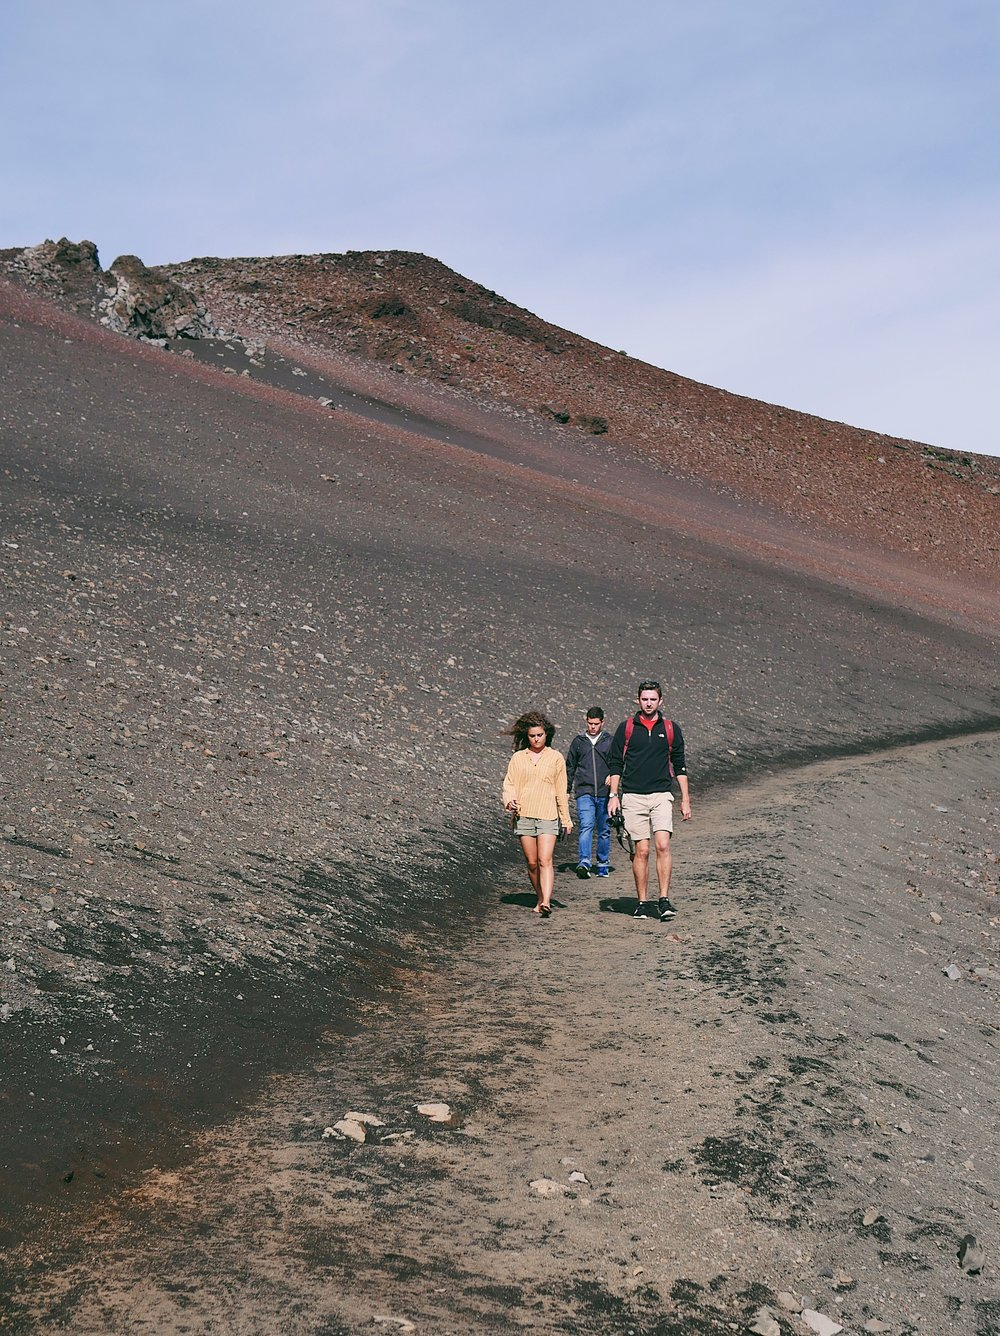 Emily Lutz, Zach Delgado, and Tyler Brewer walk along a path at the summit of Haleakalā